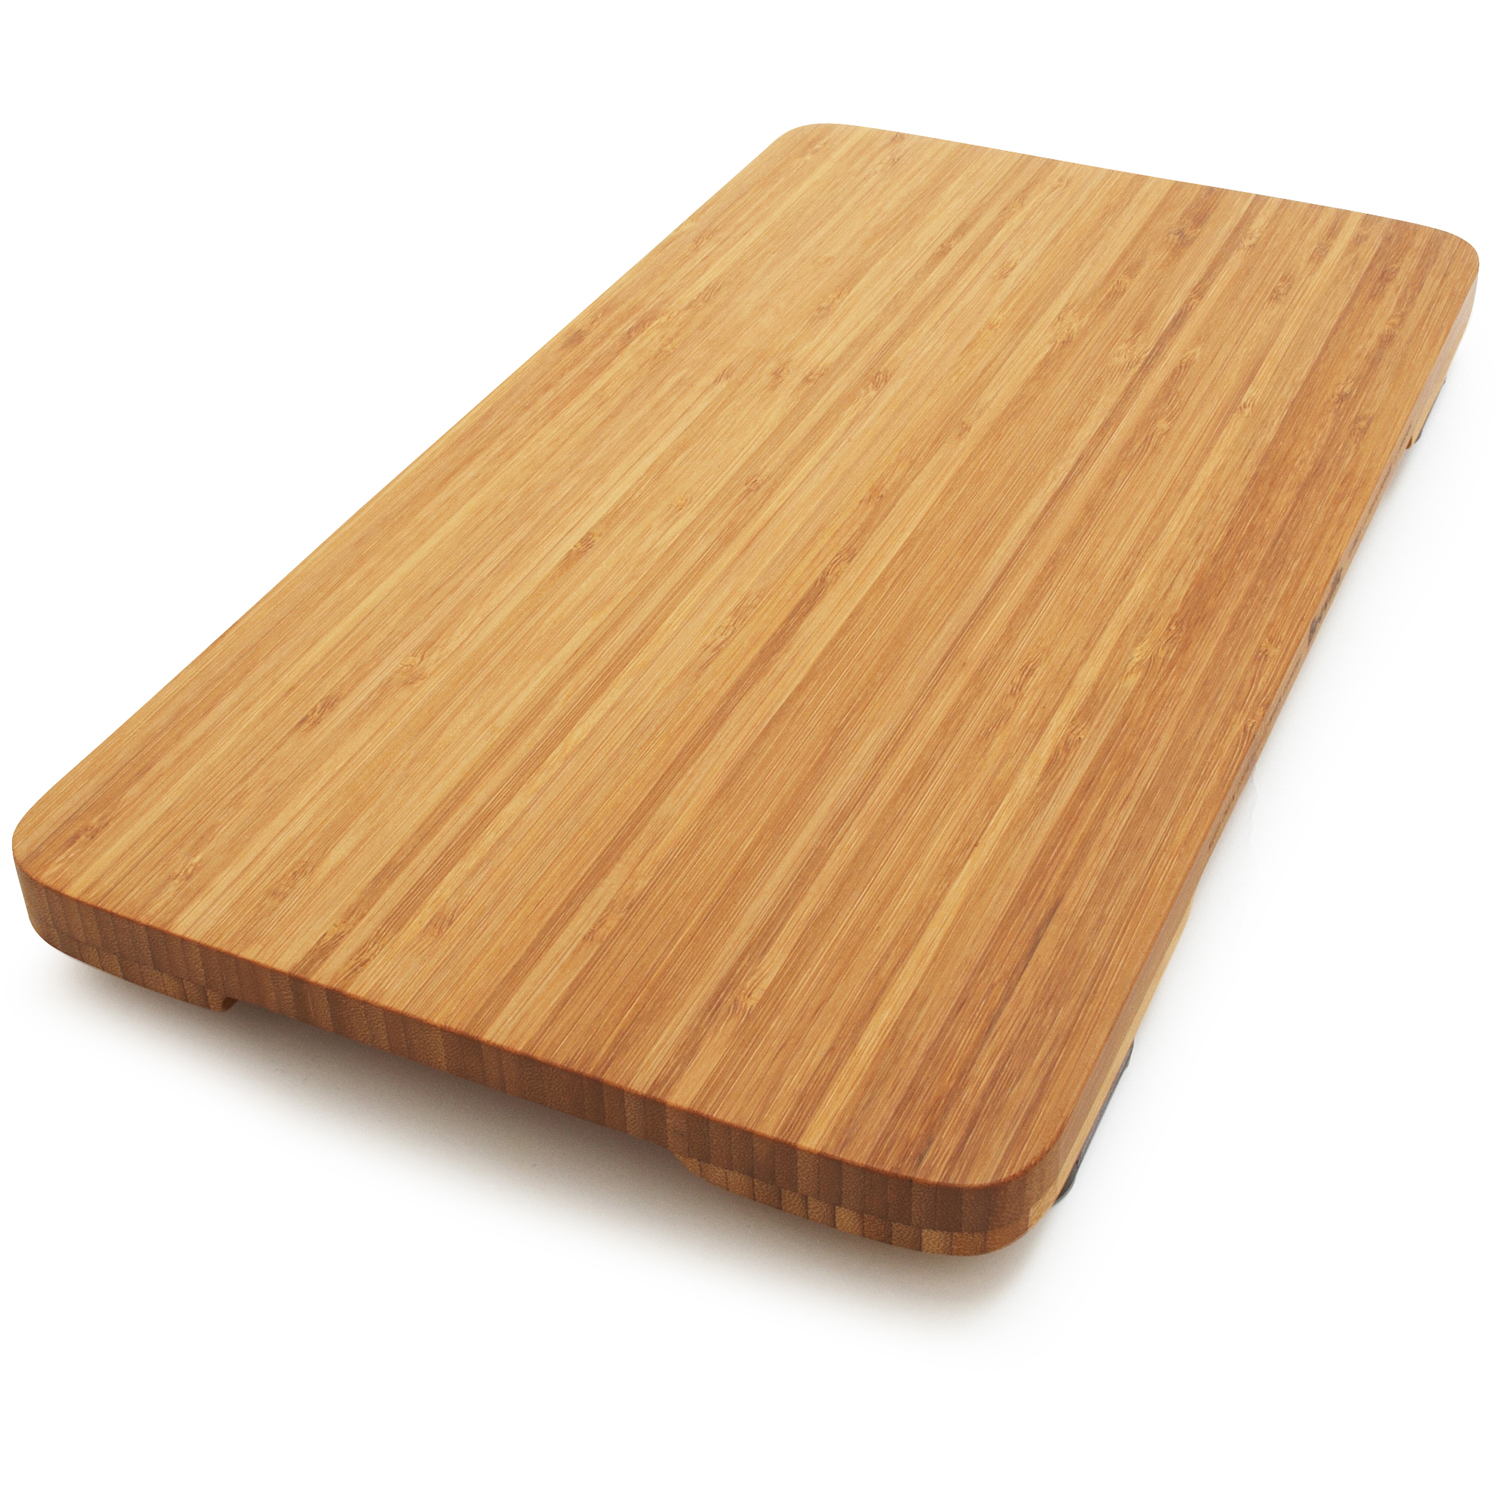 Breville Smart Oven Cutting Board Sur La Table